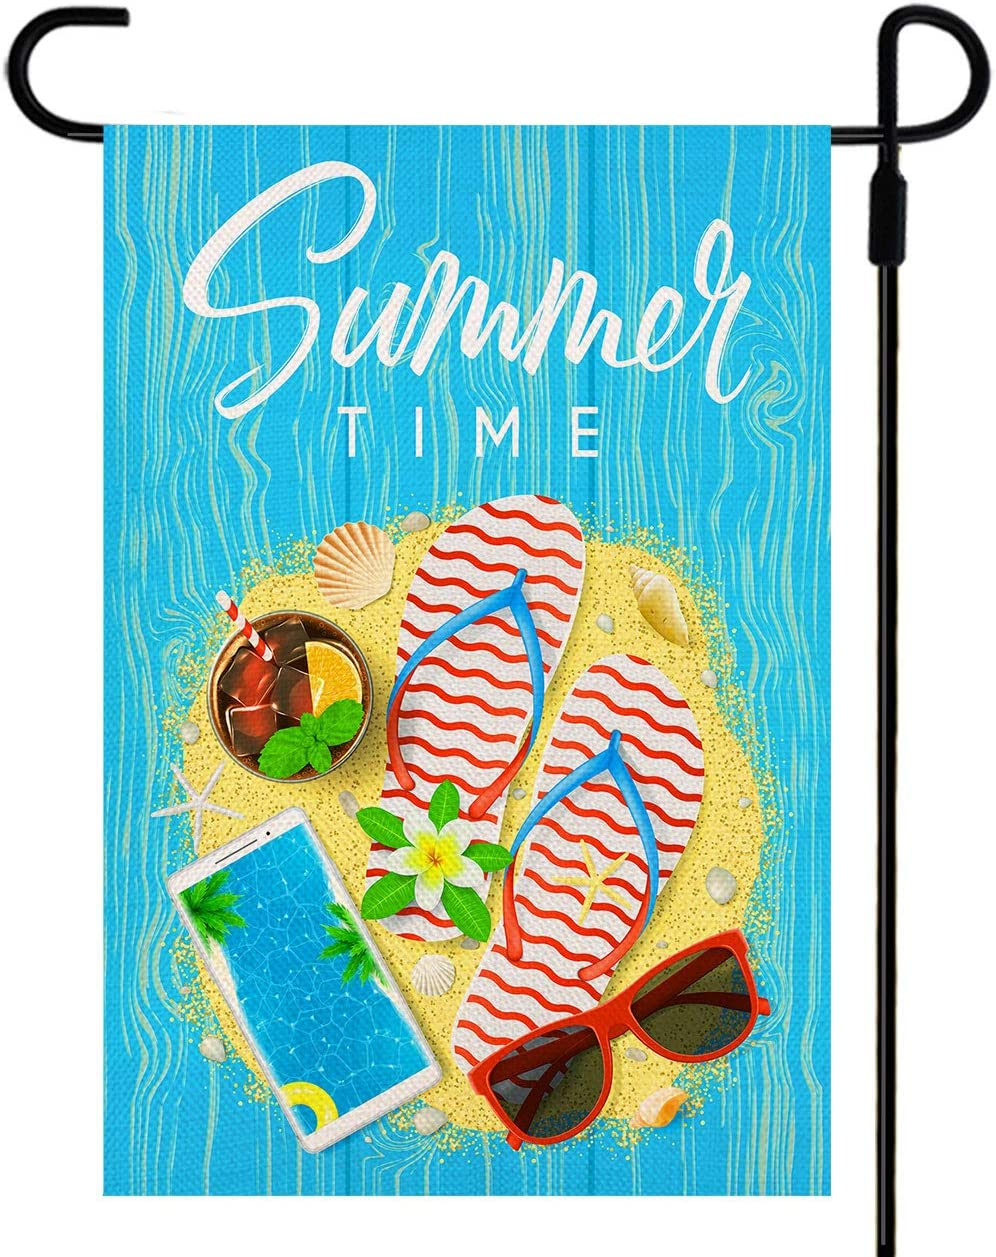 Yileqi Summer Time Garden Flag Vertical Double Sided Flip Flops Sunglasses Pool Ice Coke Beach Flag, Seasonal Burlap Small Yard Flag Summer Outdoor Decoration 12 .5 x 18 Inches